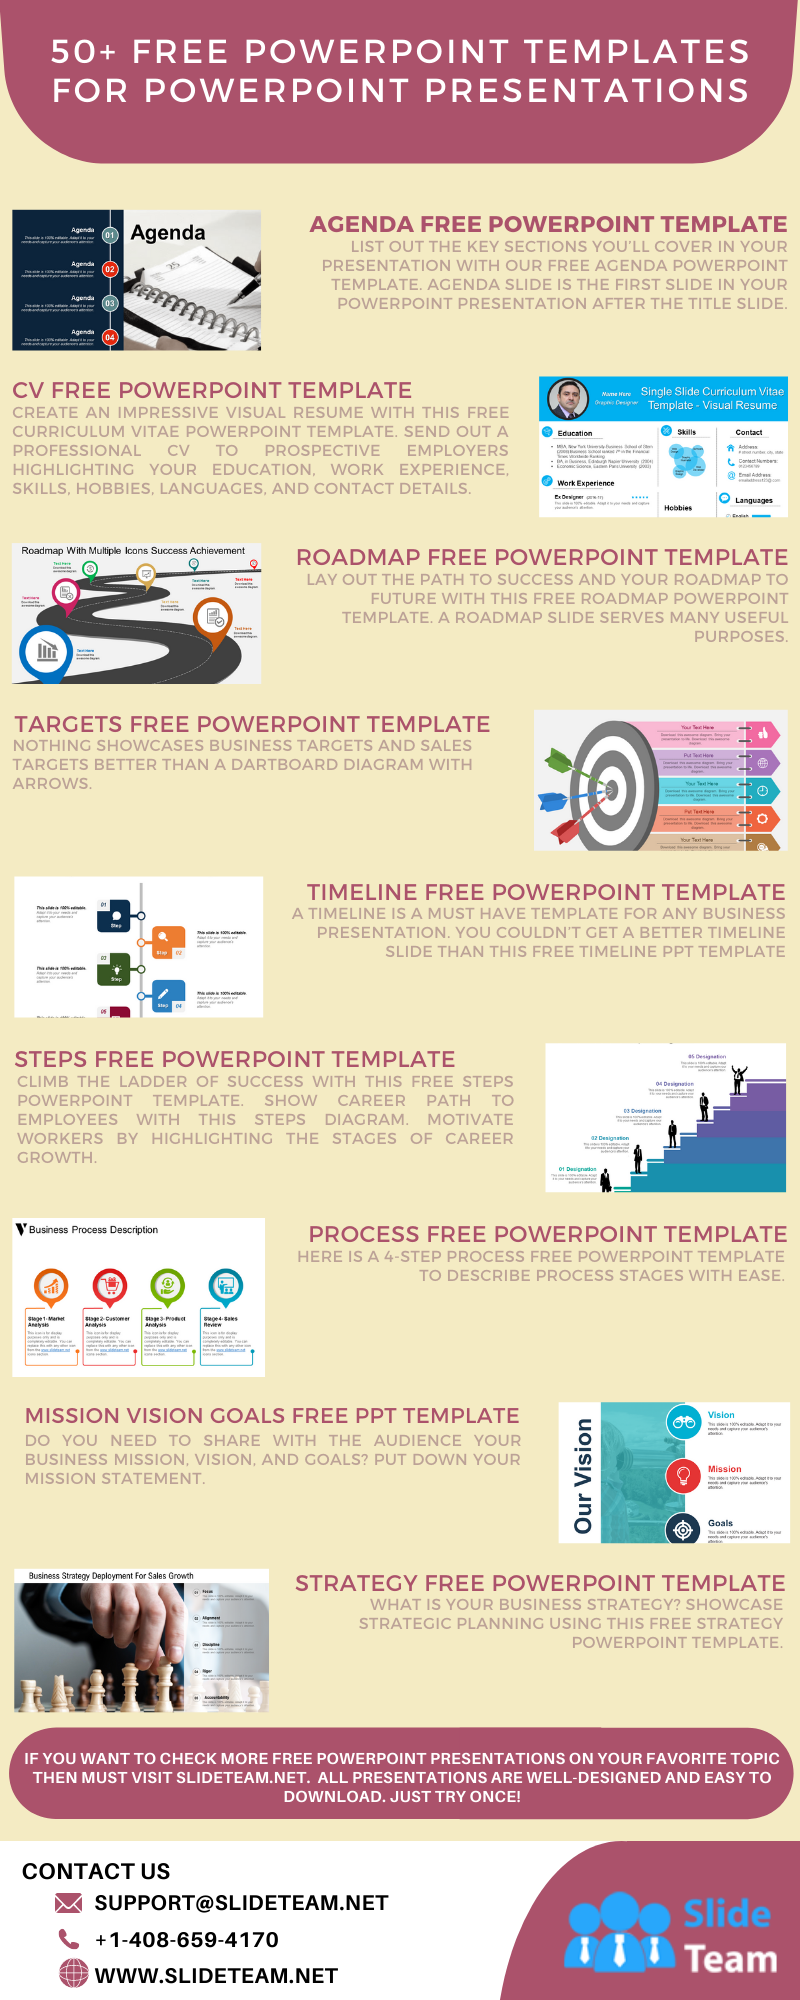 50+ Free PowerPoint Templates for PowerPoint Presentations #infographic